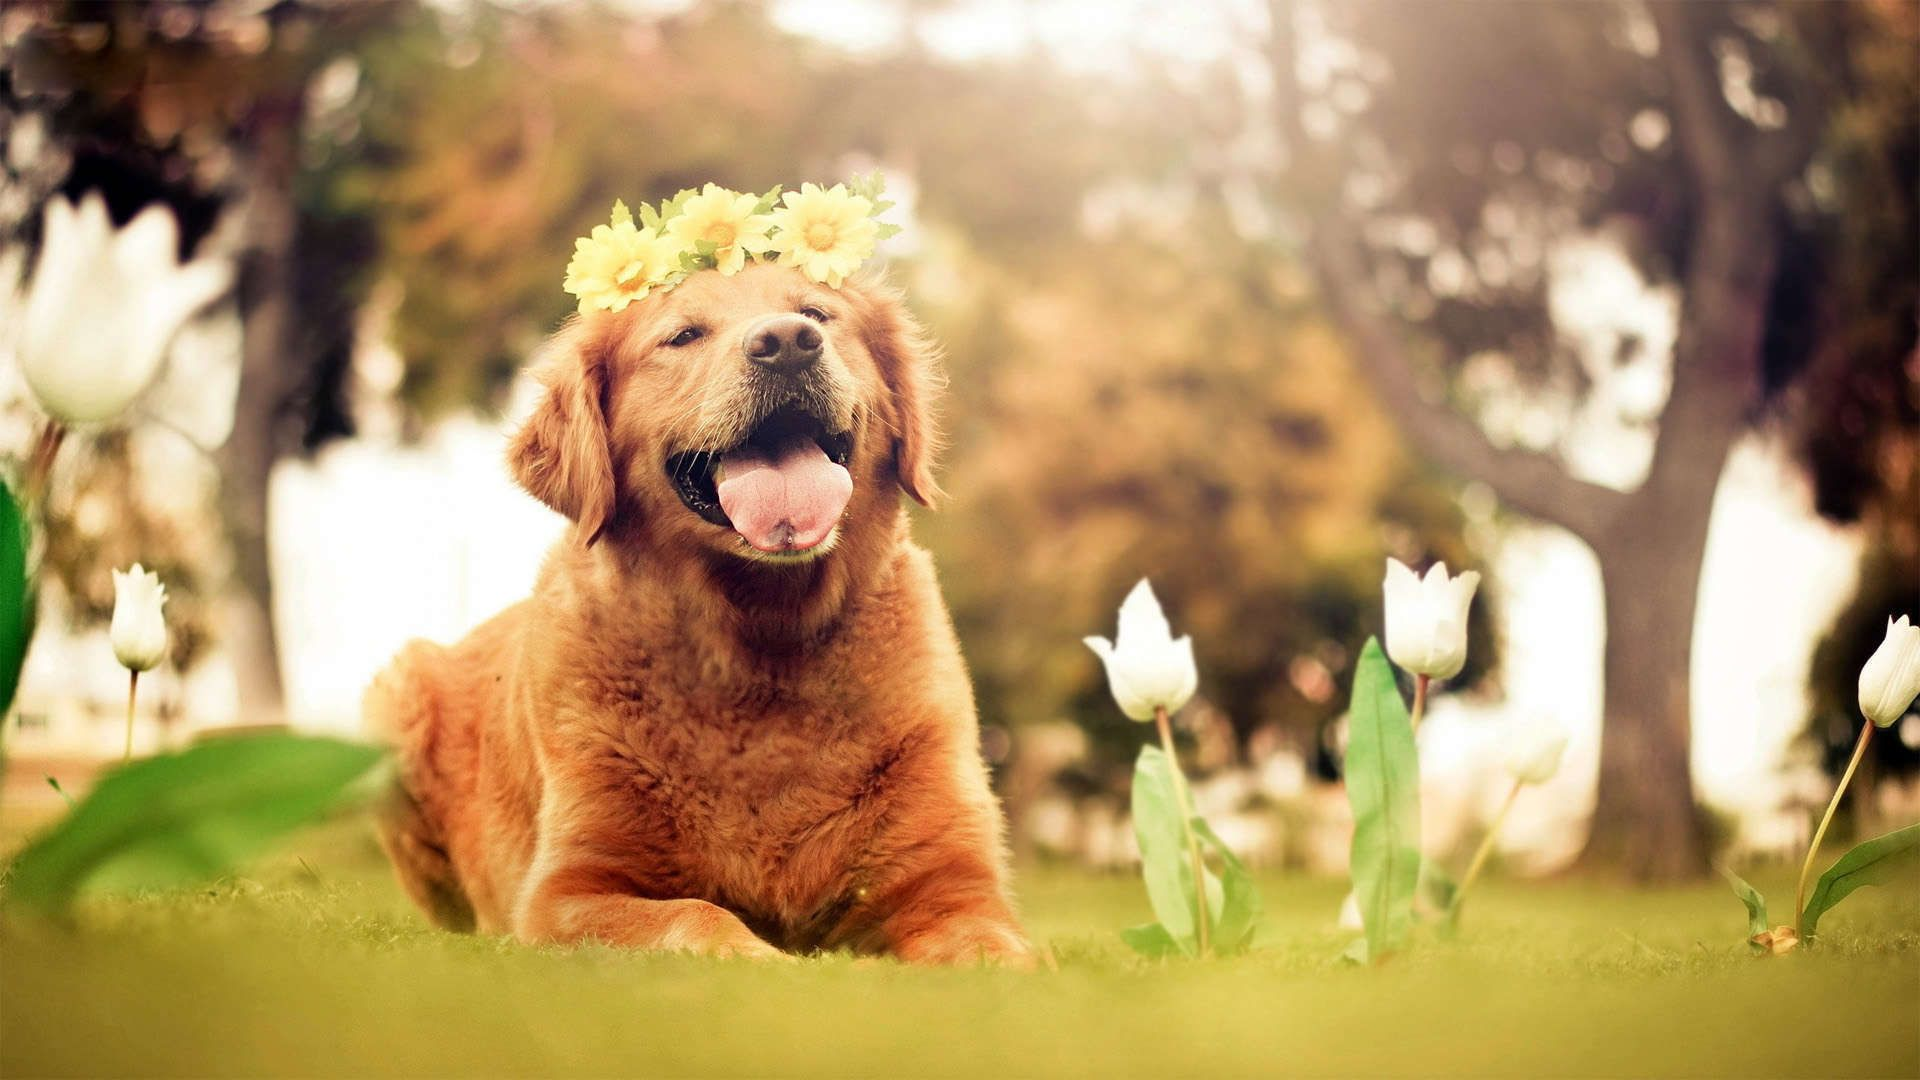 golden retriever wallpapers hd download 1920×1080 golden retriever